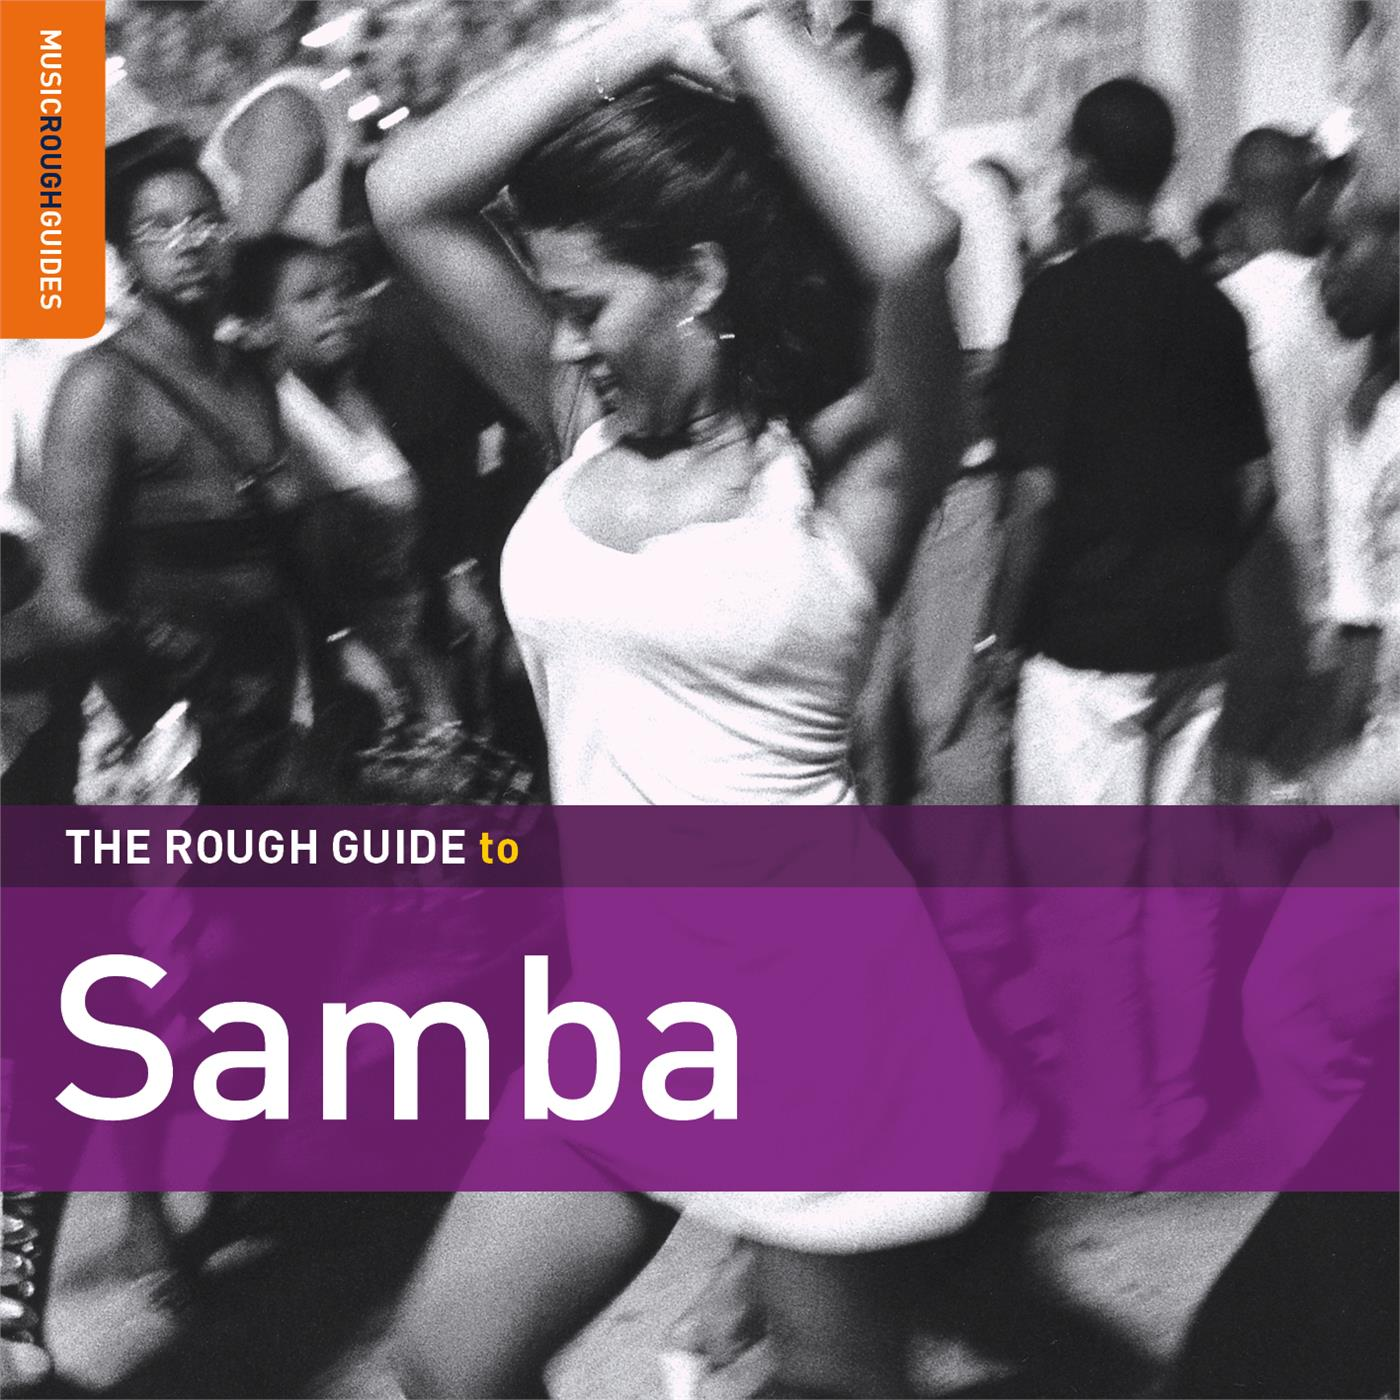 RGNET1289LP World Music Network  Diverse artister Rough Guide To Samba (LP)